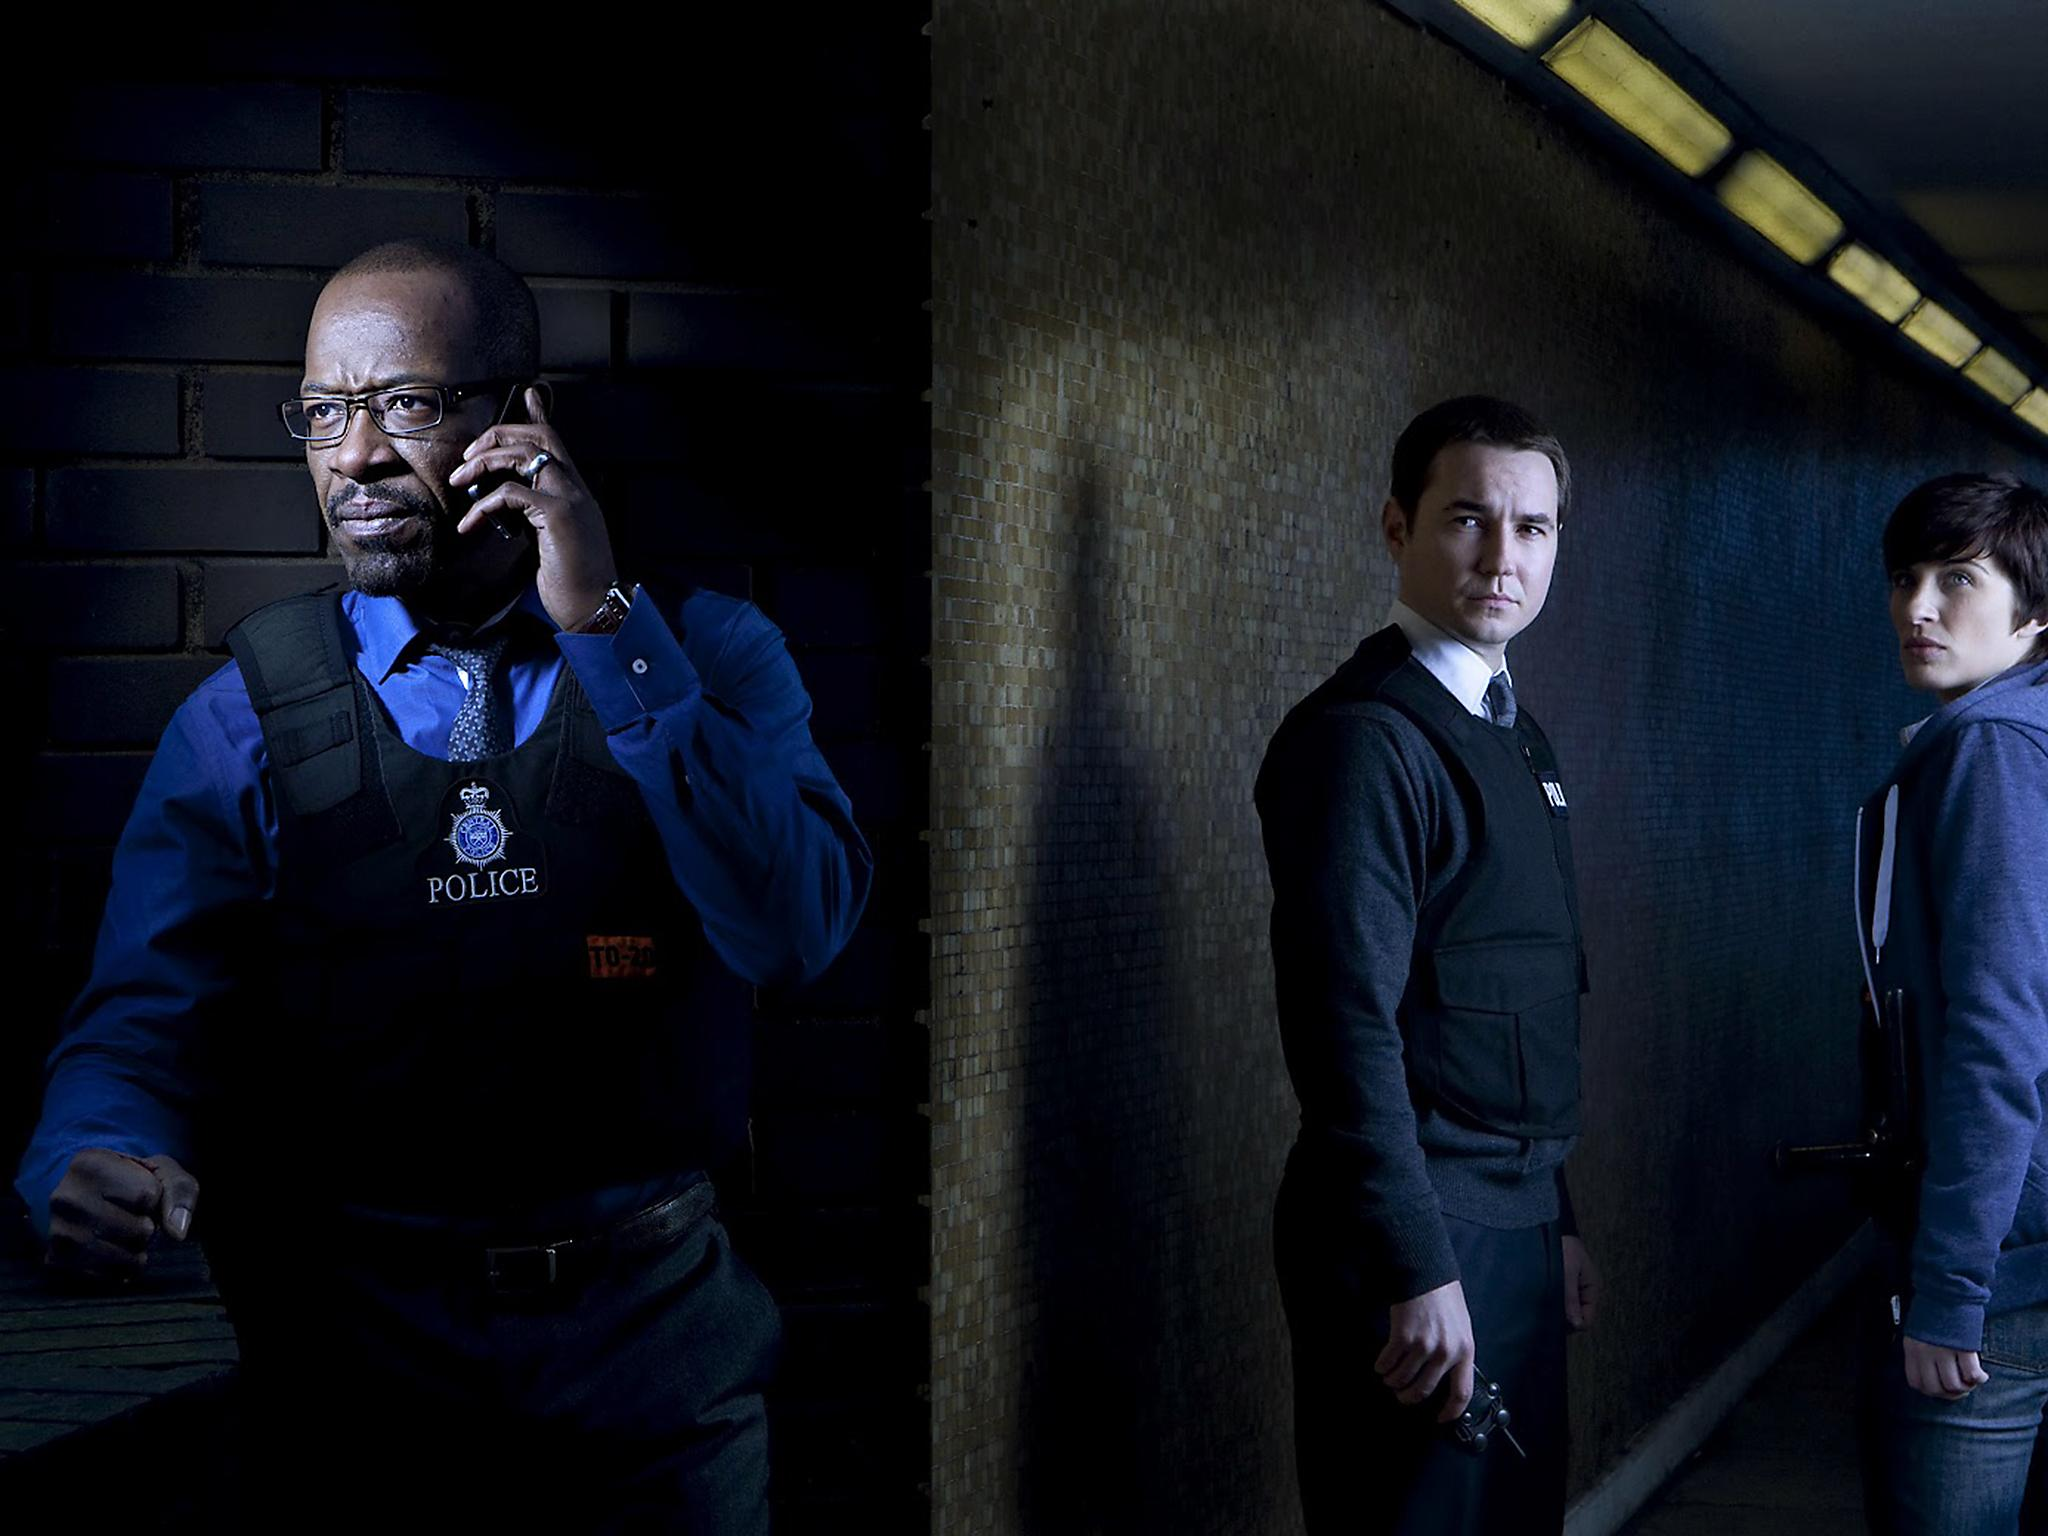 The 20 greatest TV cop shows of all time, from Line of Duty to The